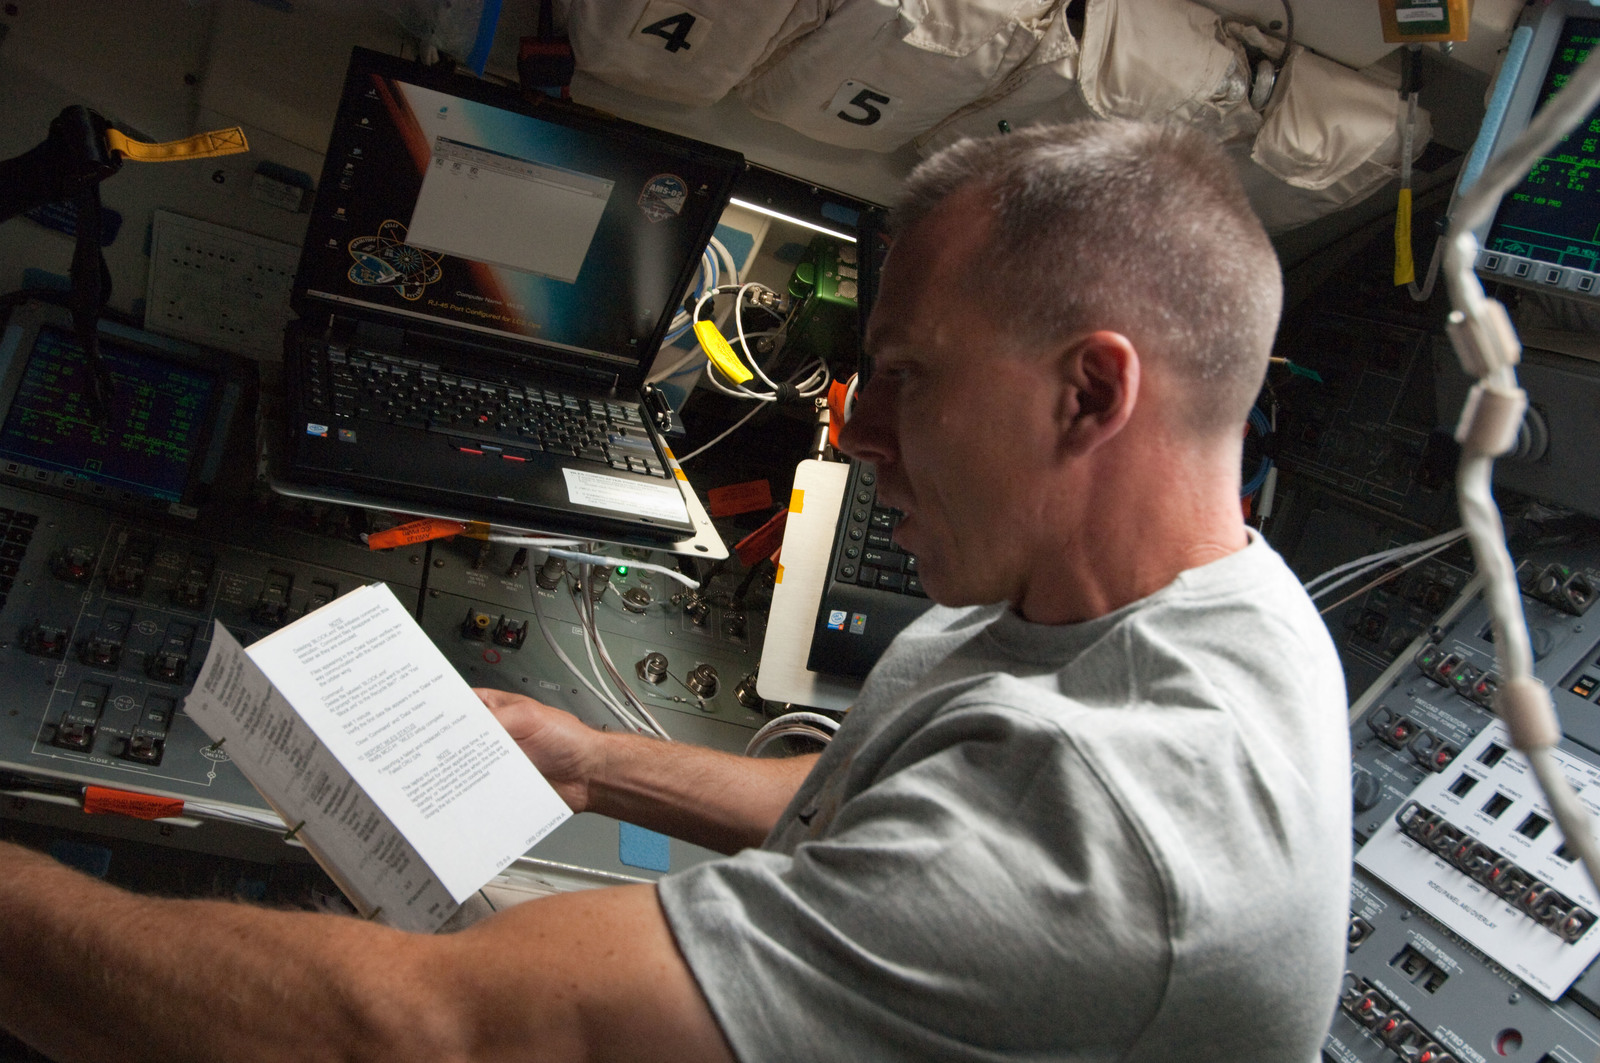 S134E005334 - STS-134 - View of STS-134 MS Feustel working on the Flight Deck